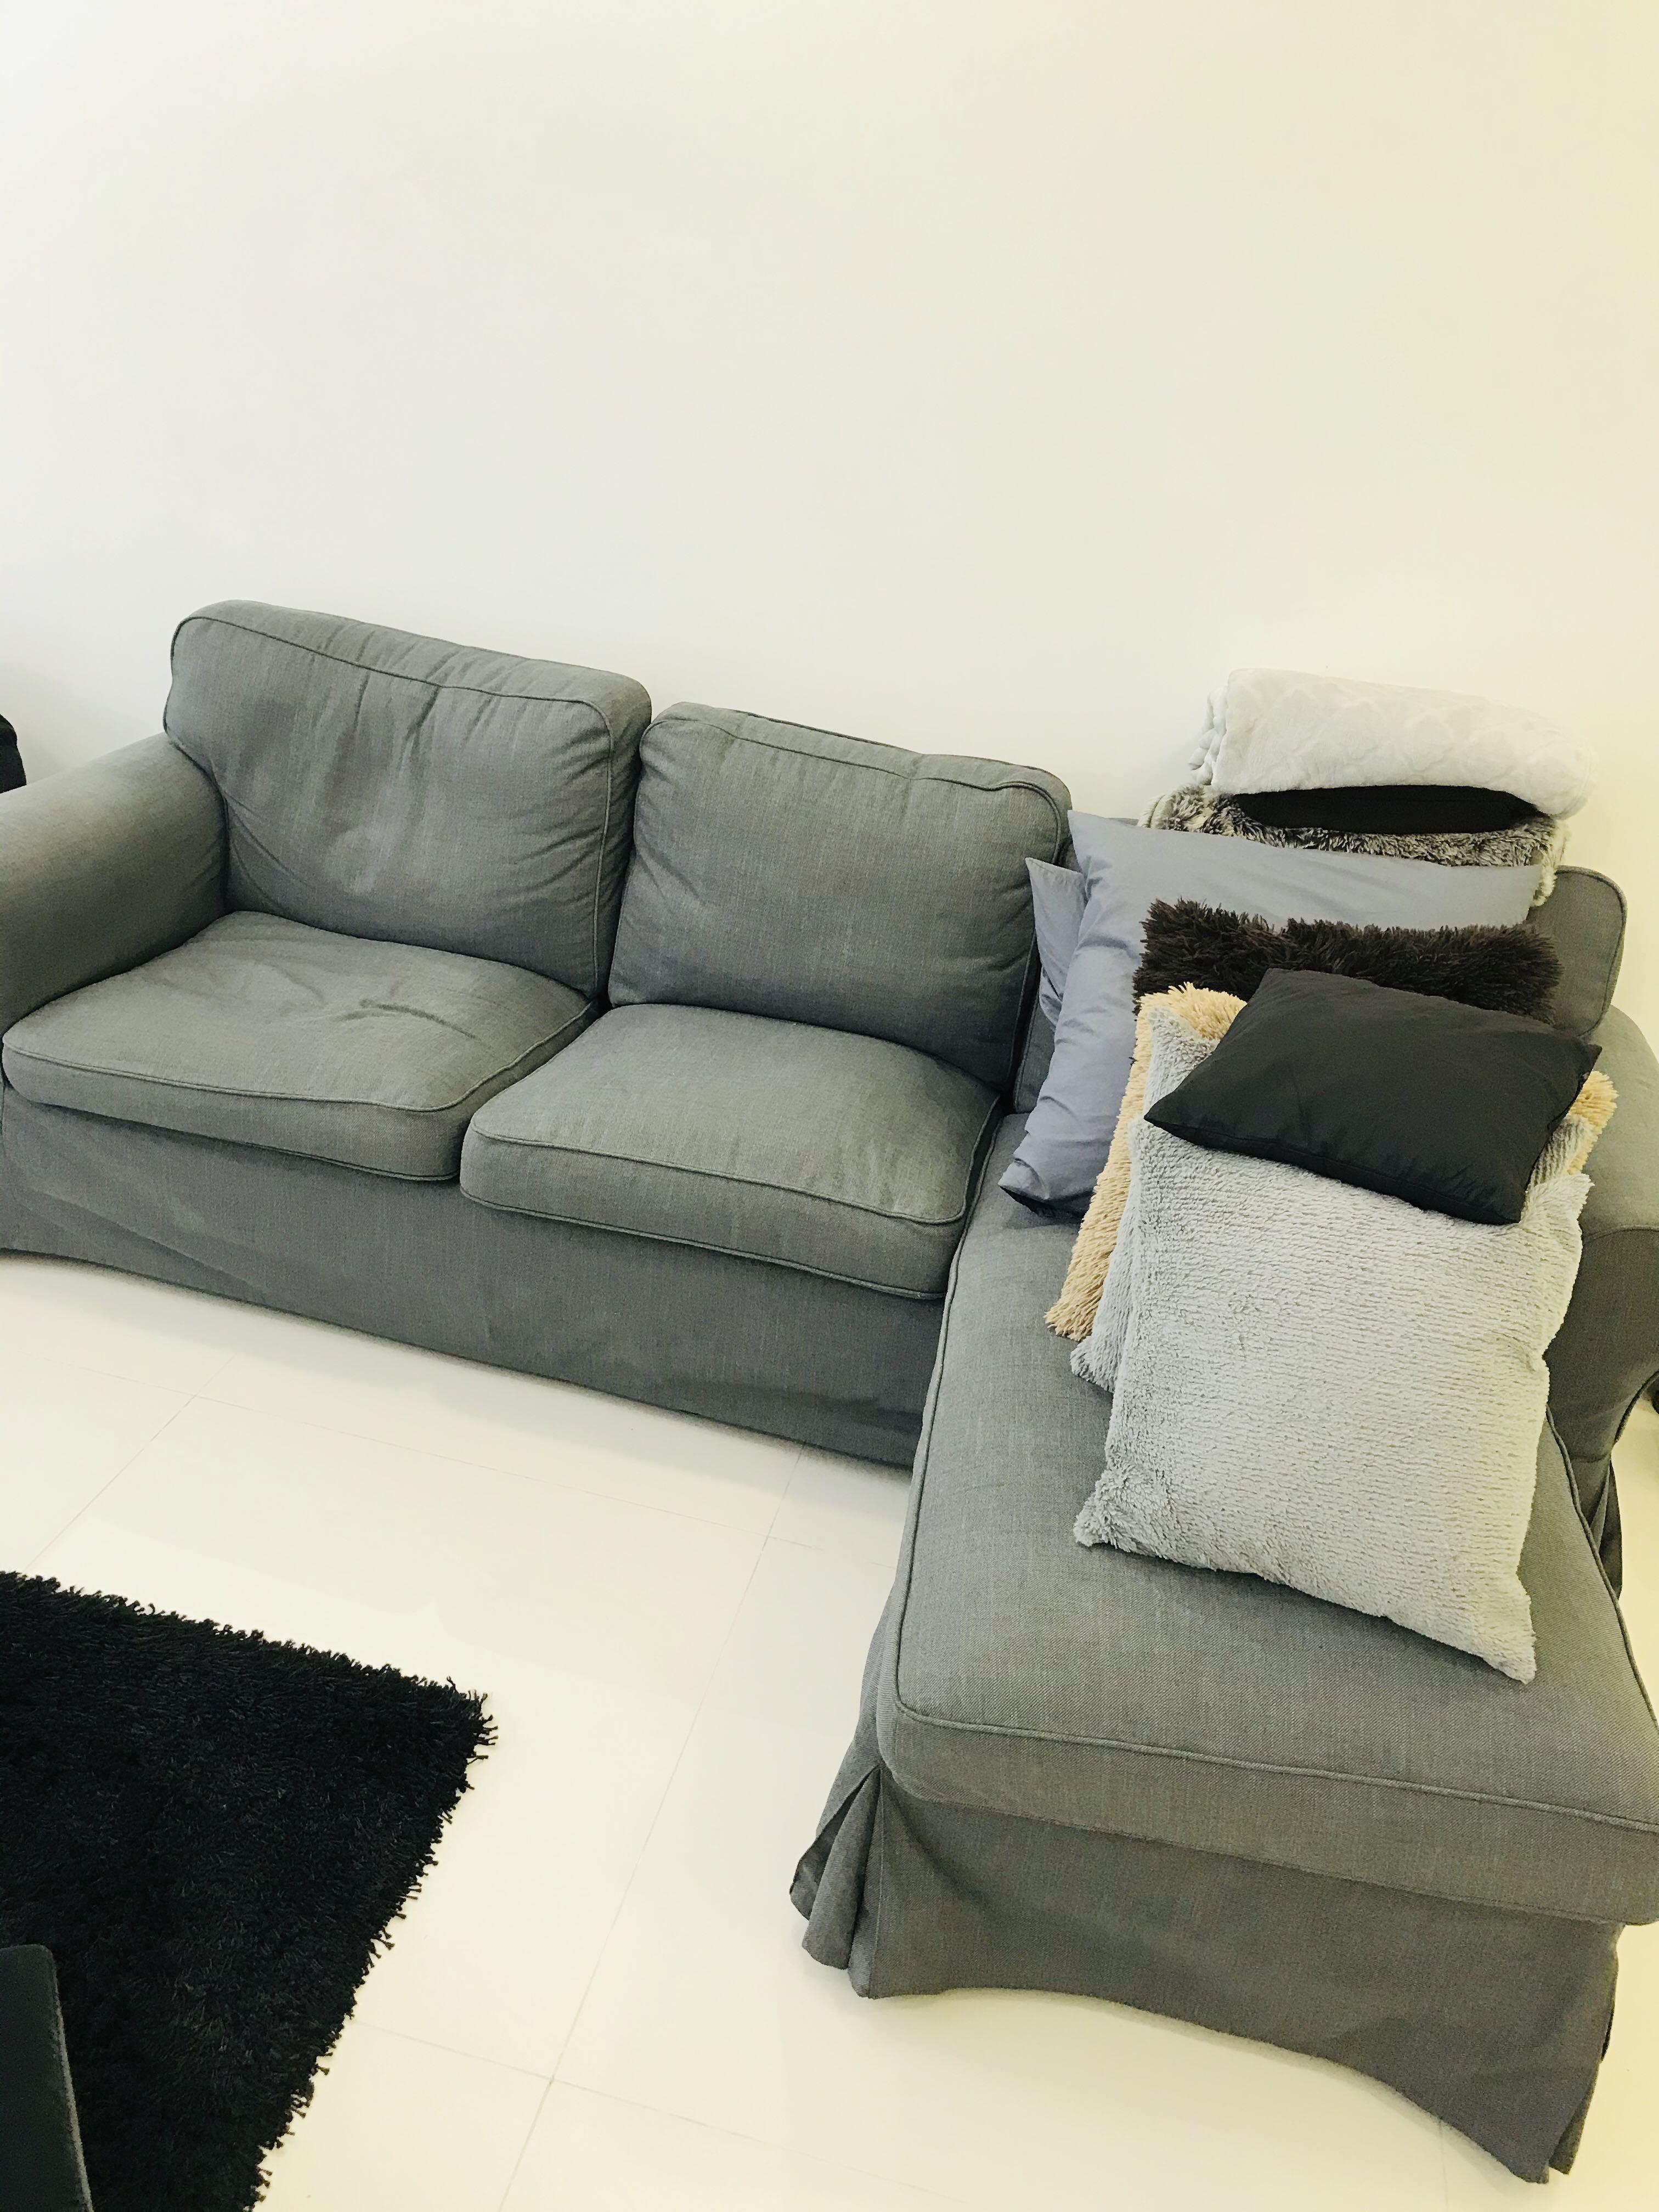 400 Fire Sale Lightly Used Grey Fabric Sofa Furniture Sofas On Carousell